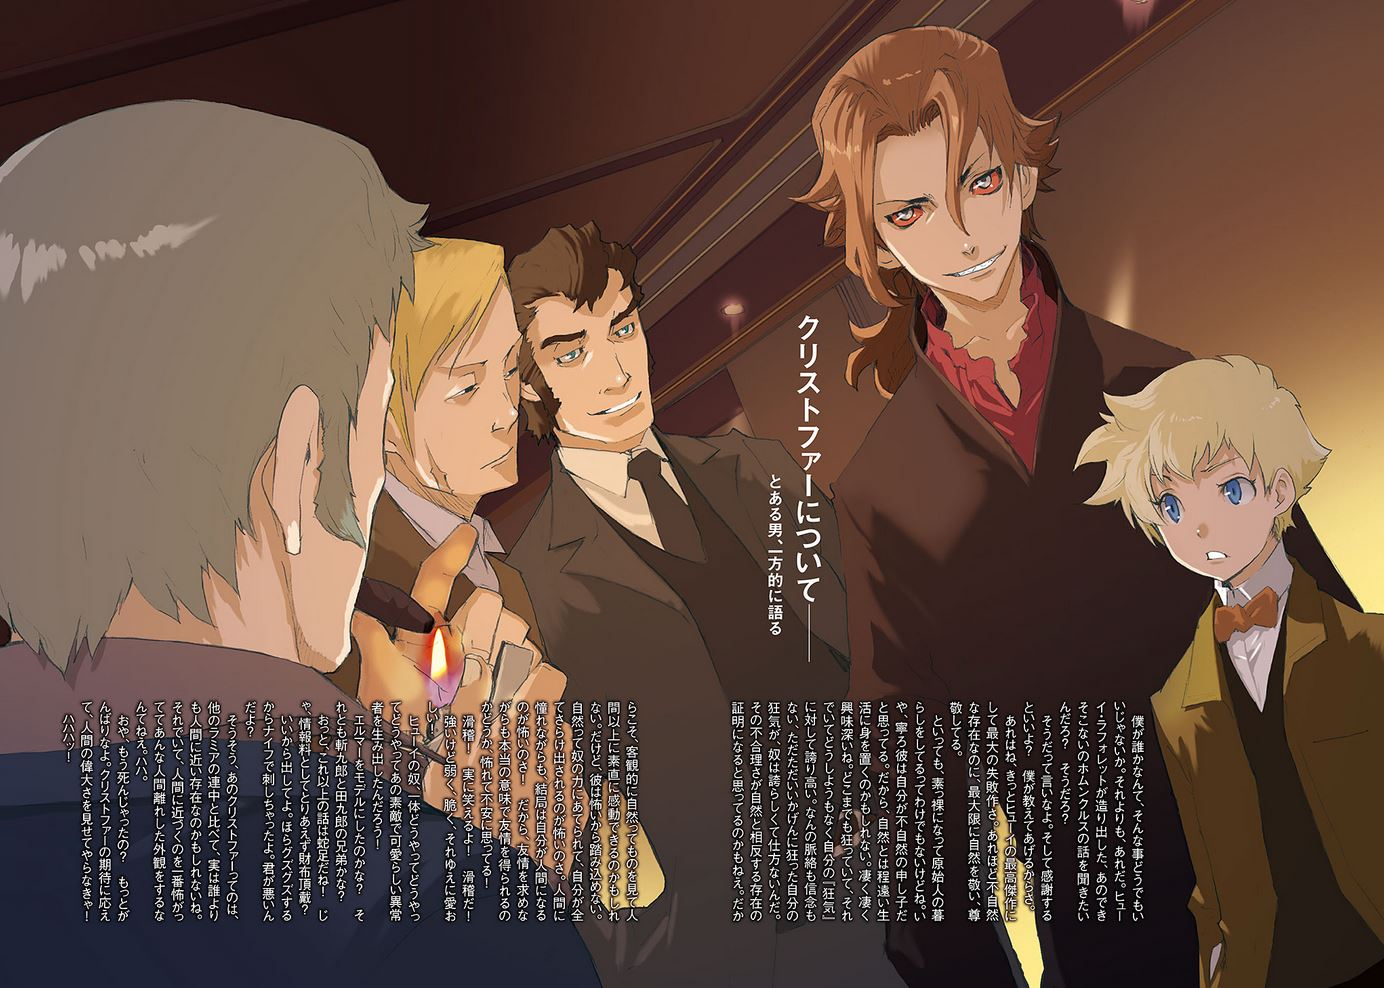 image about christopher jpg baccano wiki fandom powered by wikia